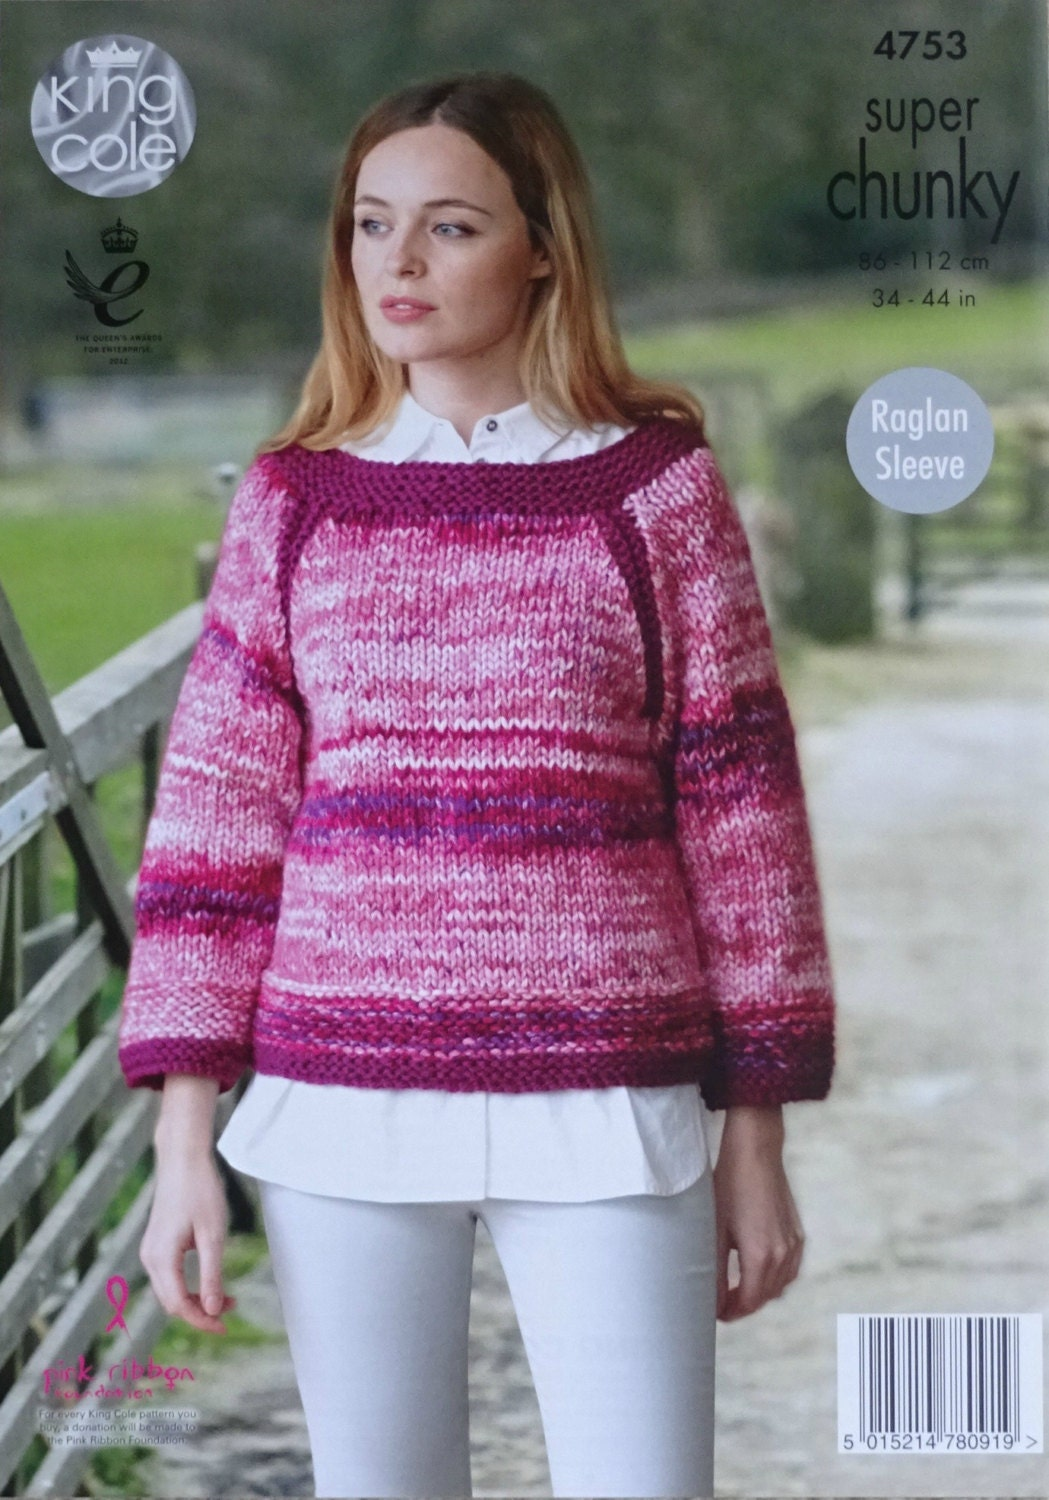 Womens knitting pattern k4753 ladies easy knit long sleeve boat womens knitting pattern k4753 ladies easy knit long sleeve boat neck jumper knitting pattern super chunky super bulky king cole bankloansurffo Images